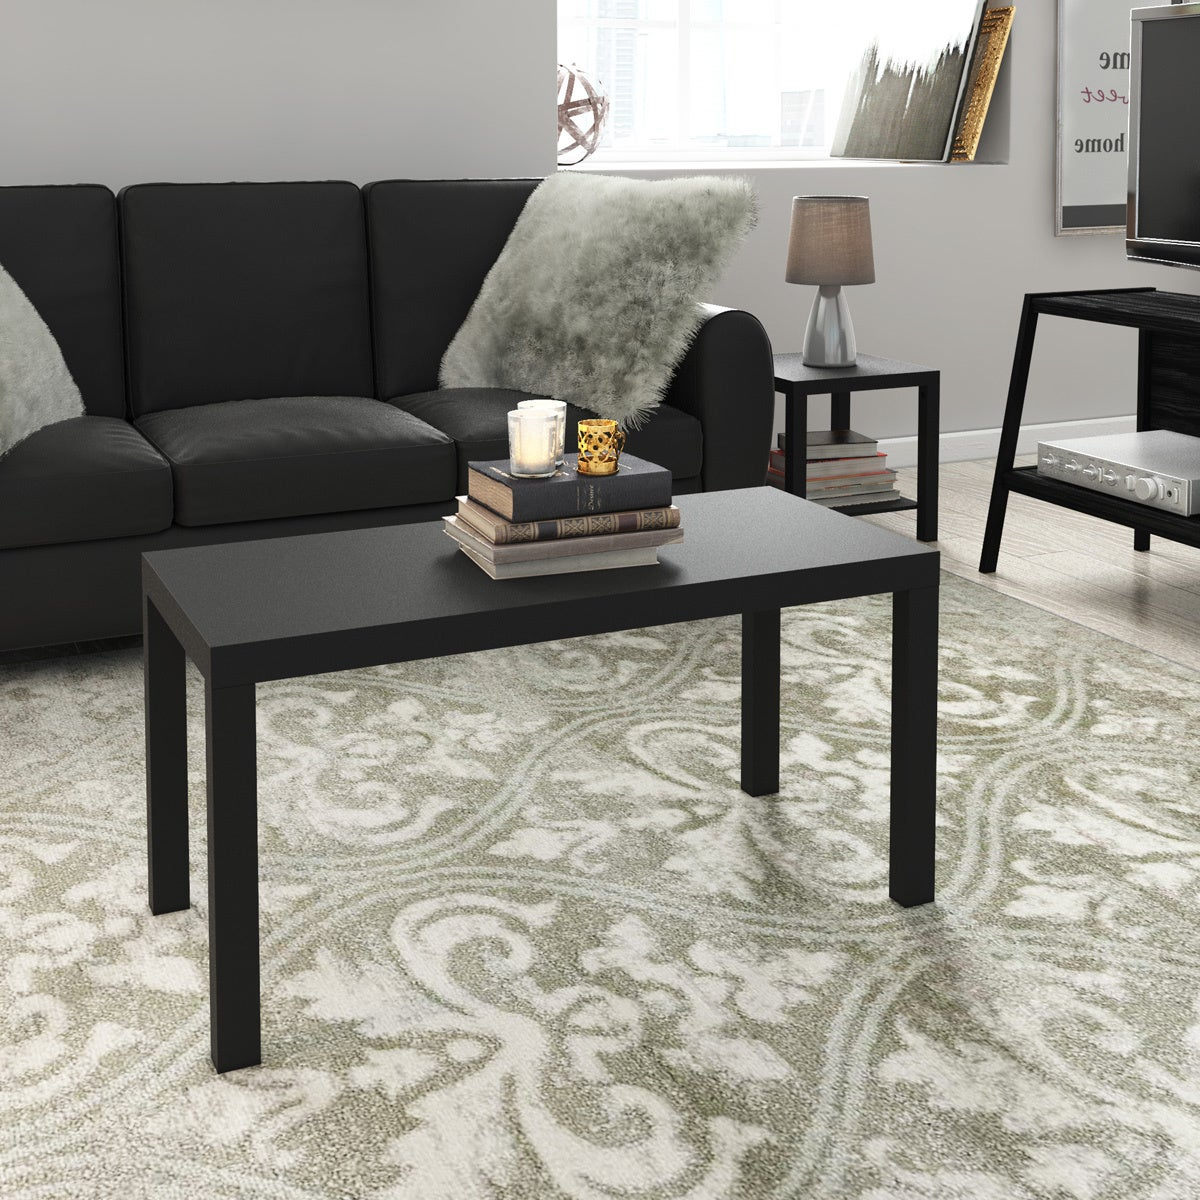 wicker park alley coffee table and end tables 3-piece set - free